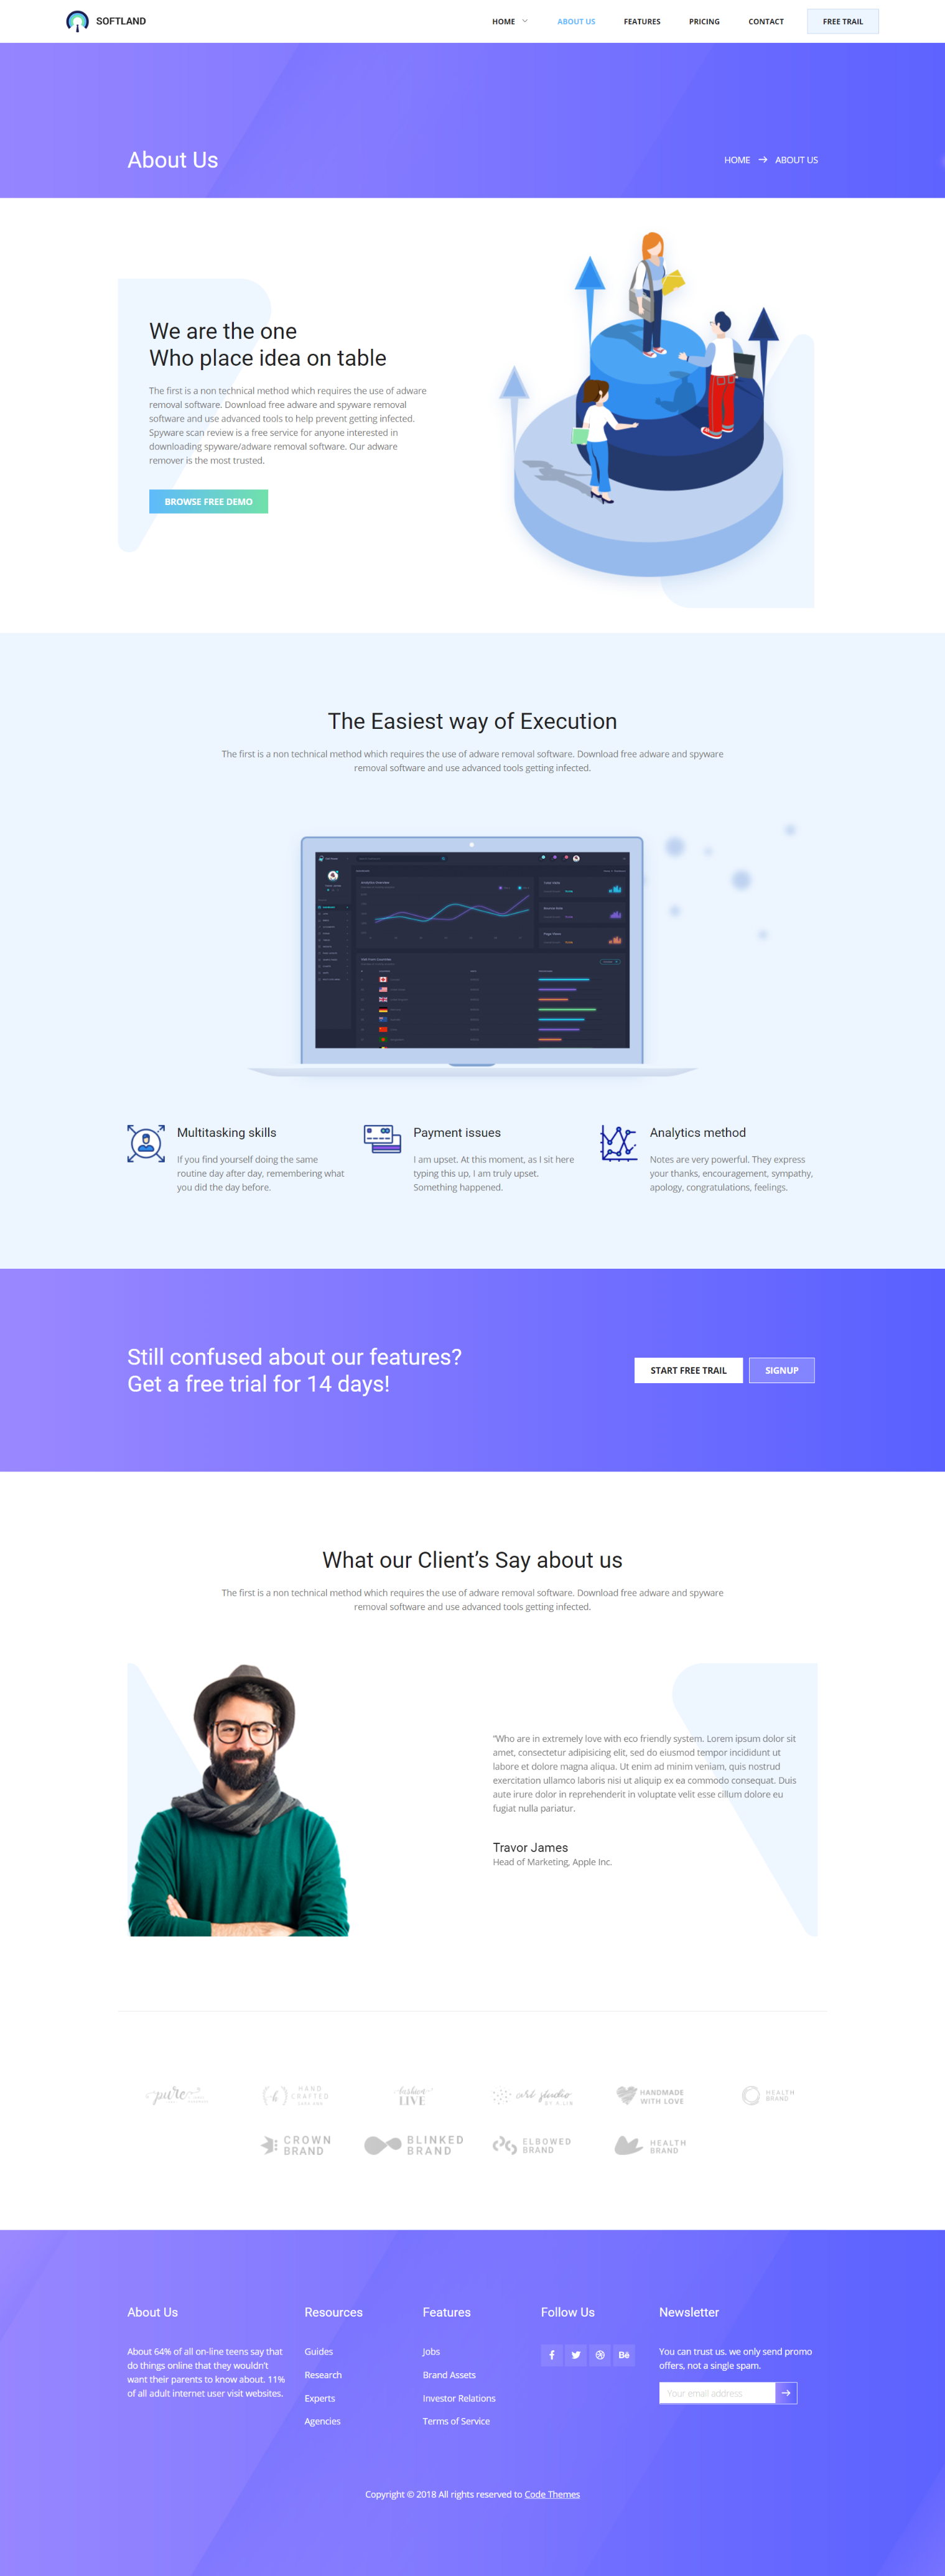 Softland Creative Clean Modern Trendy Design Saas And Software Template Gradient About Us Page Web Clean Web Design About Us Page Design Web Design